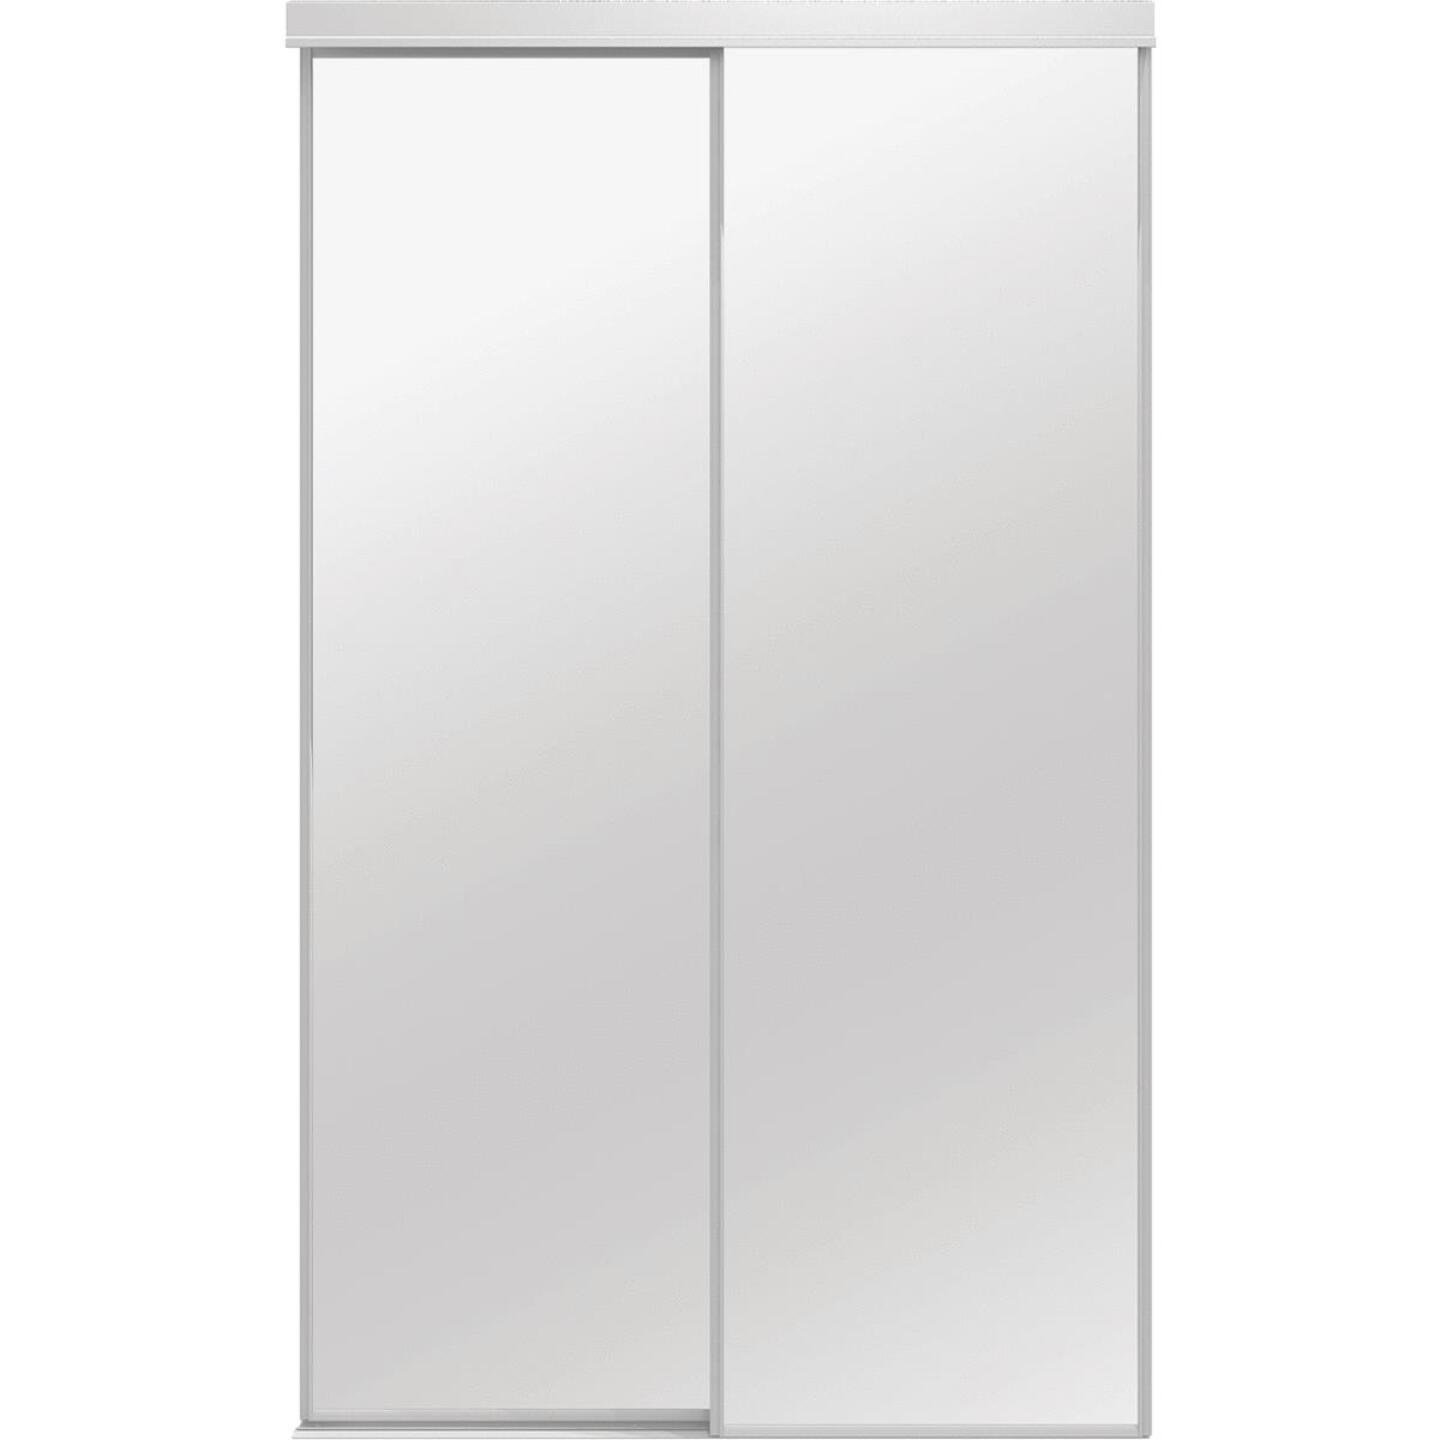 Colonial Elegance Economical Series 60 In. x 80-1/2 In. White Framed Mirrored Sliding Bypass Door Image 1